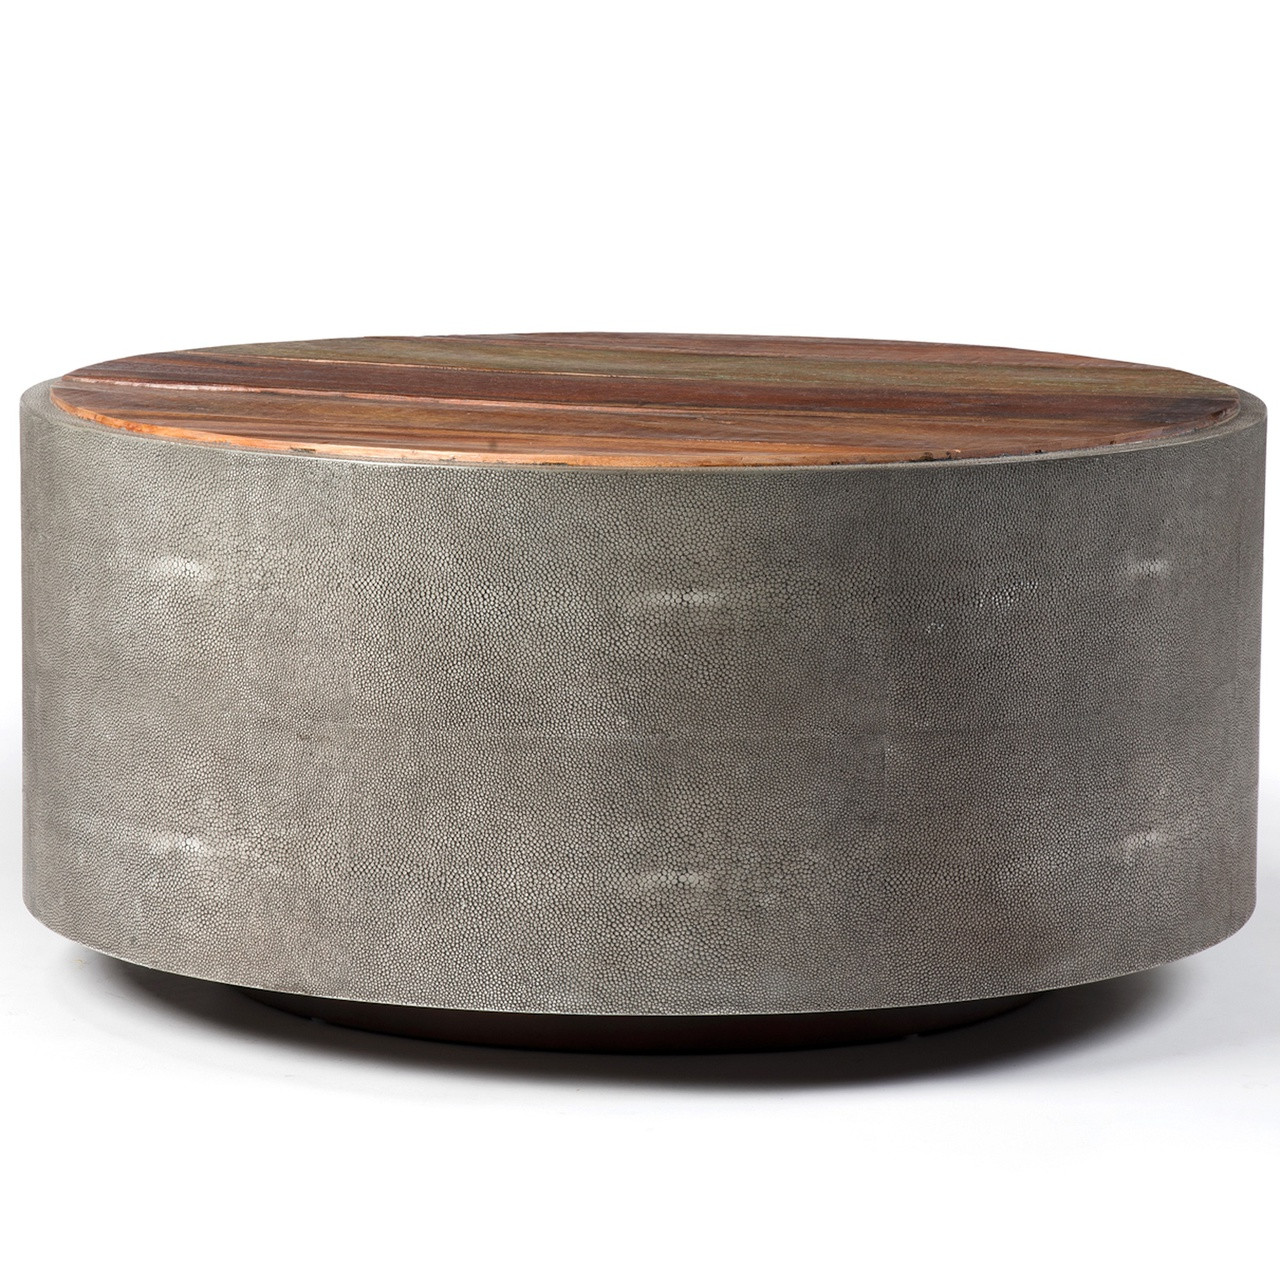 "round 38"" reclaimed wood + shagreen coffee table 